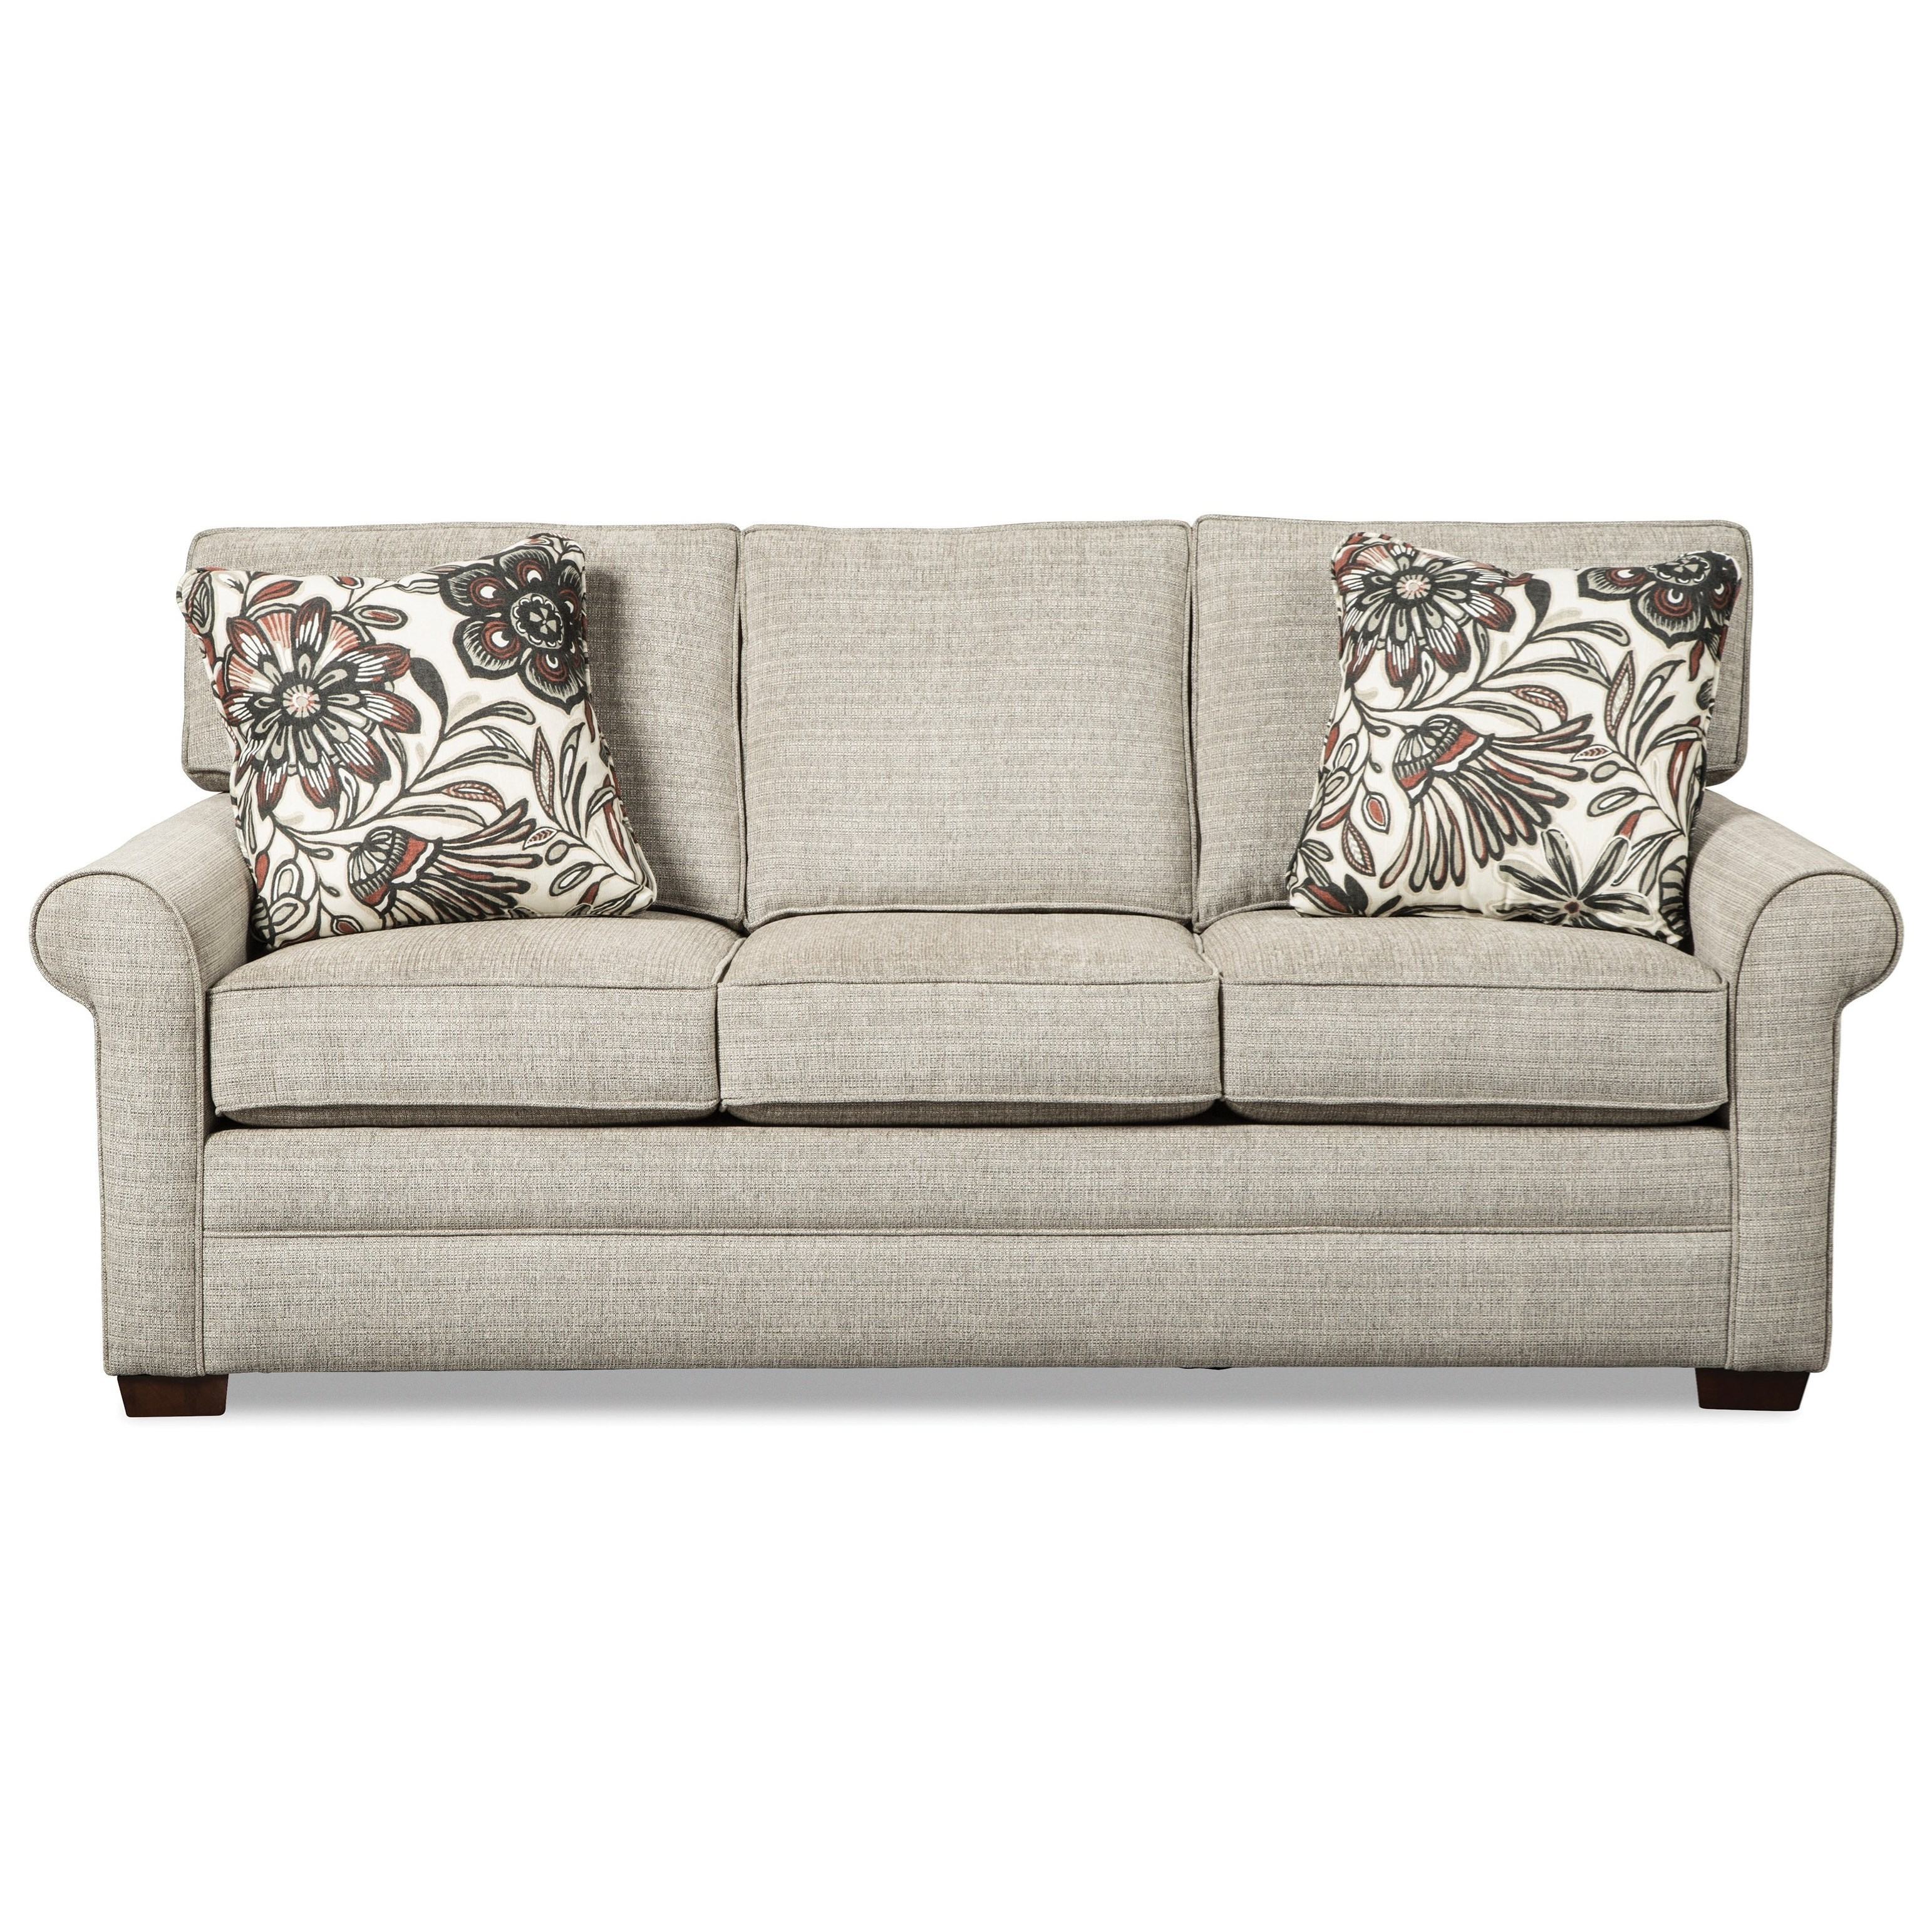 Transitional Sofa with Rolled Arms and Loose Back Cushions